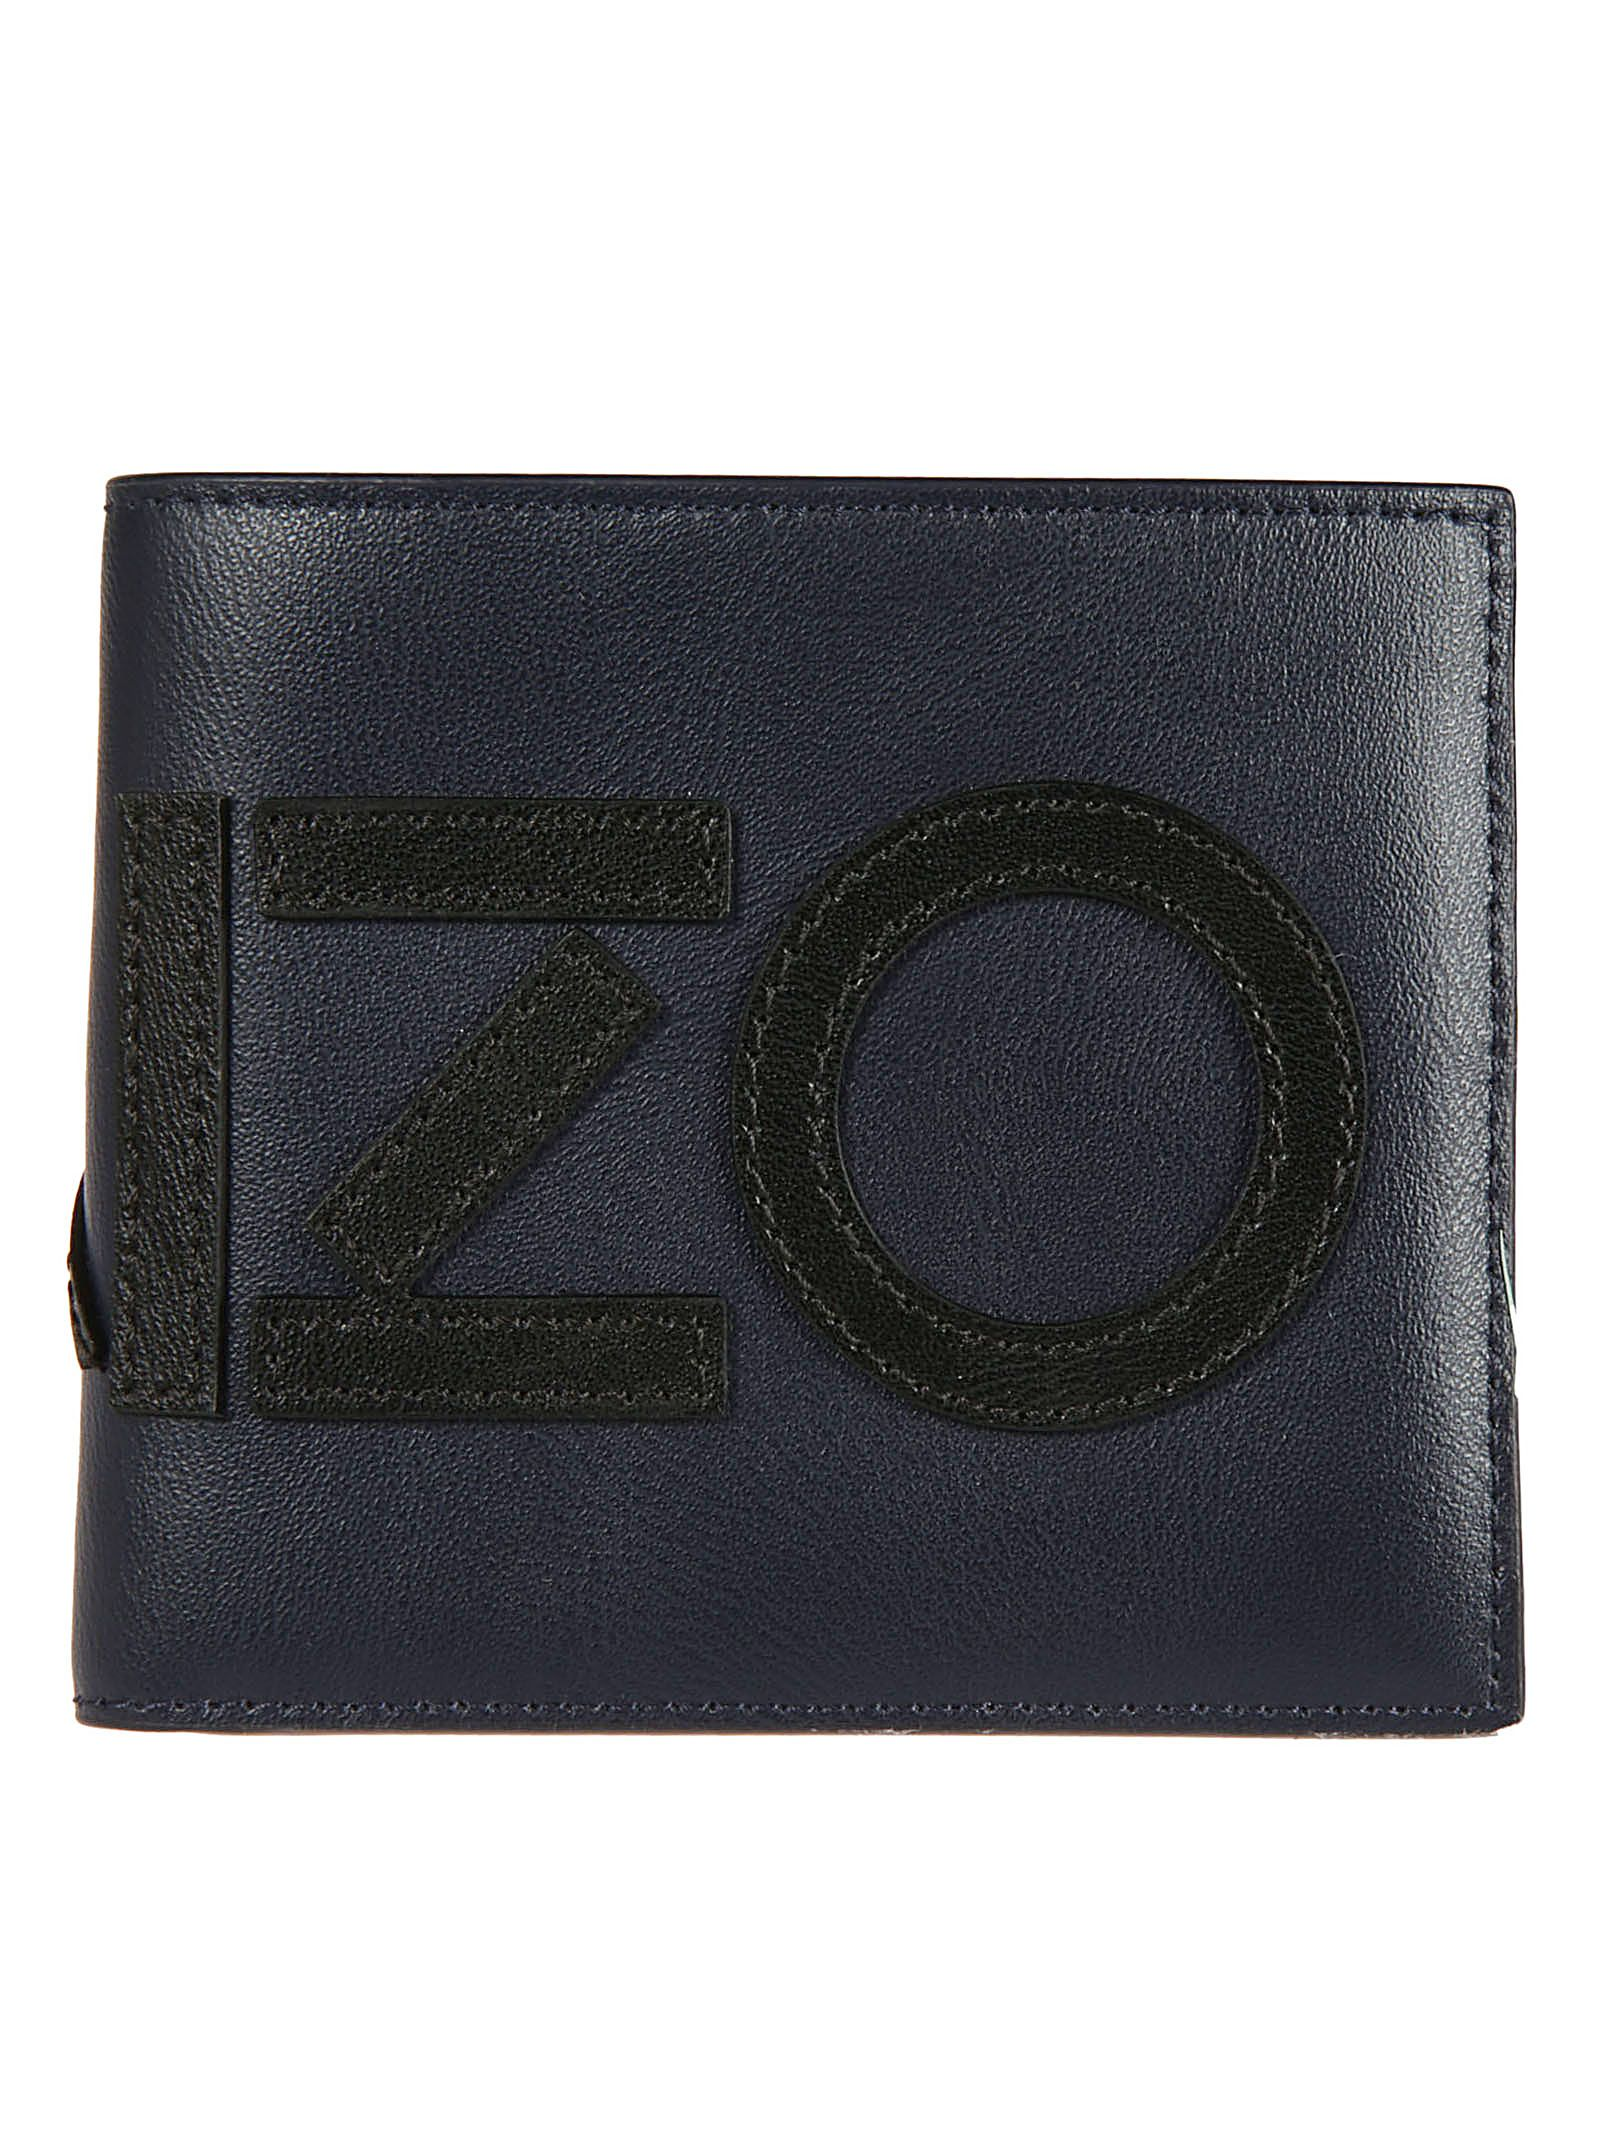 Logo Billfold Wallet, Green